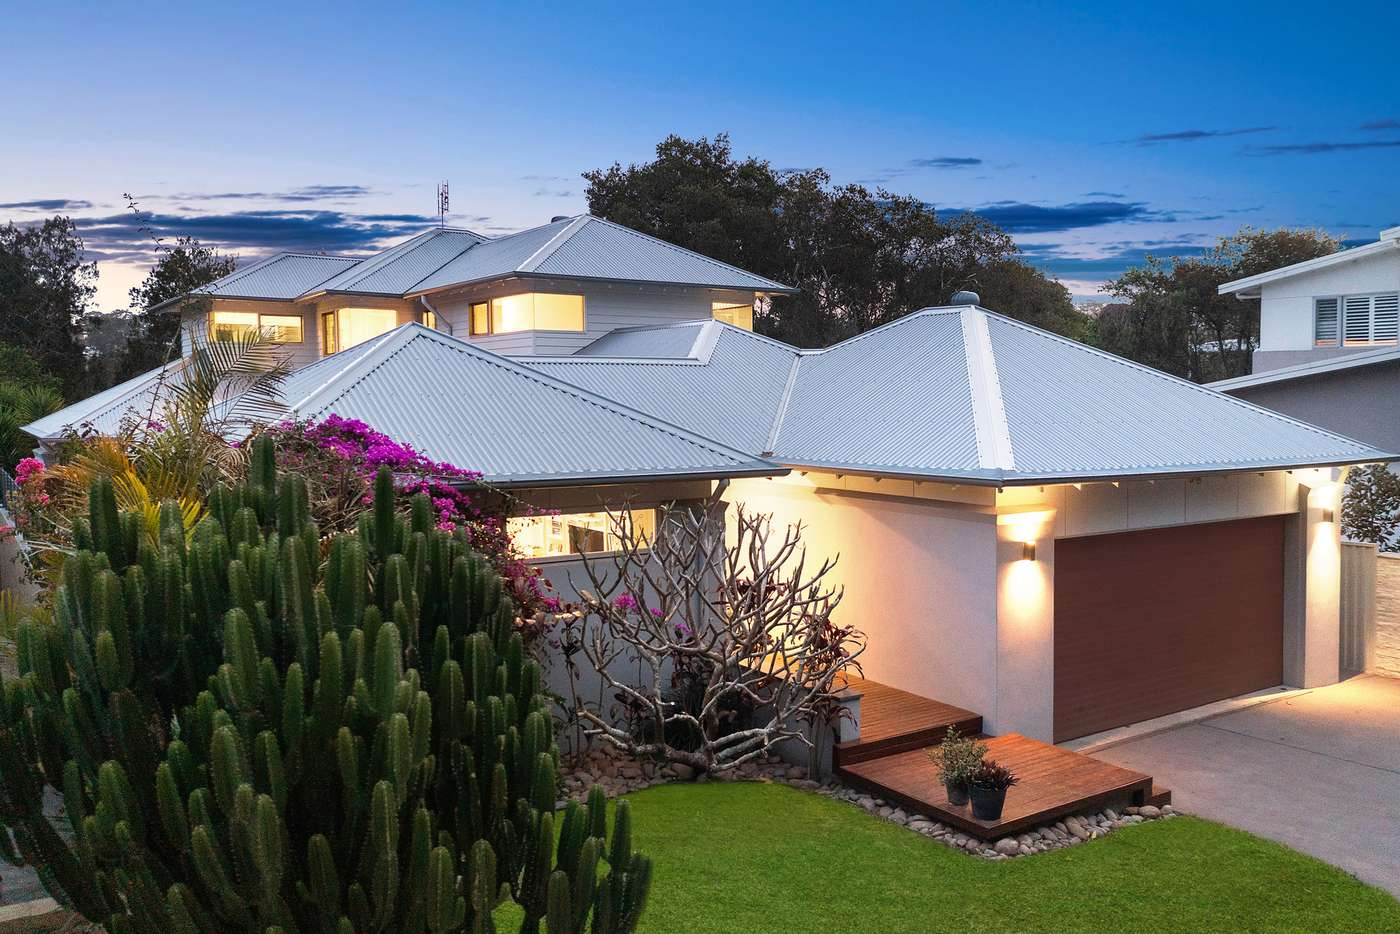 Main view of Homely house listing, 7/54 Lumeah Avenue, Wamberal NSW 2260